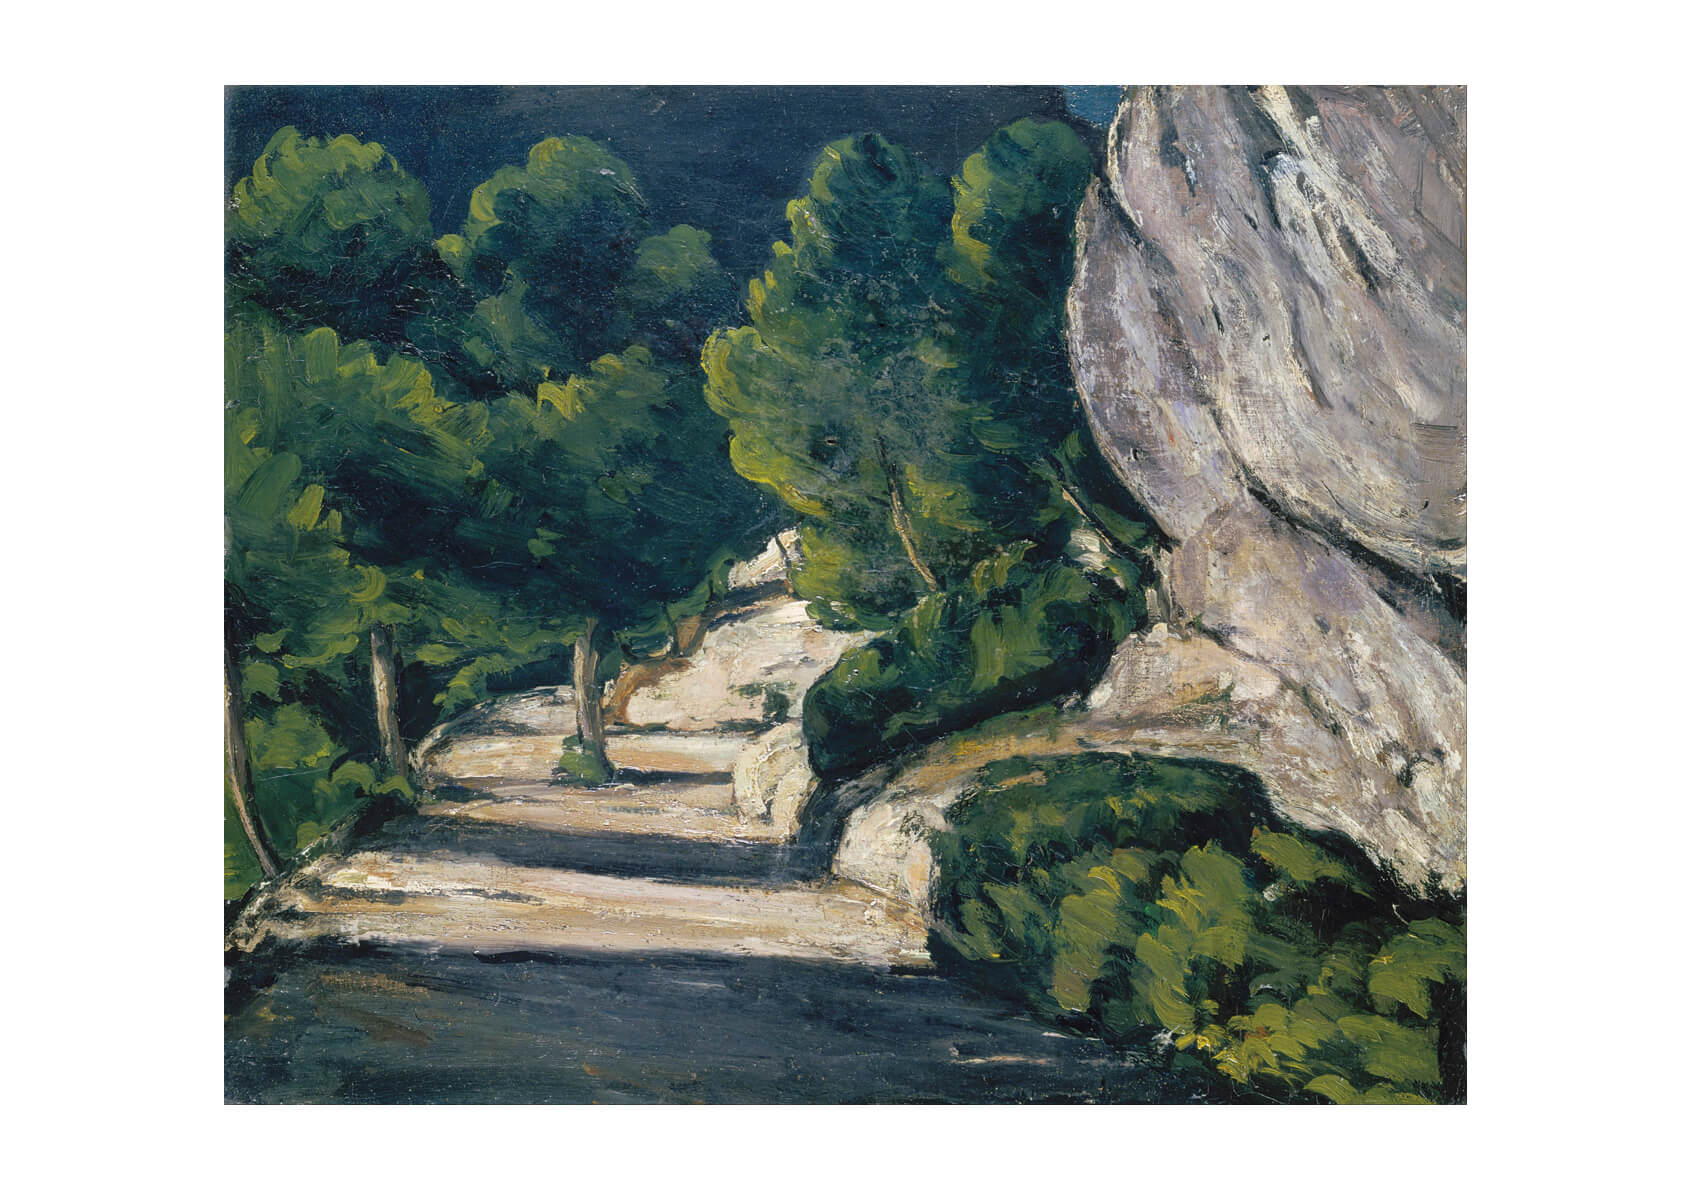 Paul Cezanne - Road with Trees in Rocky Mountains